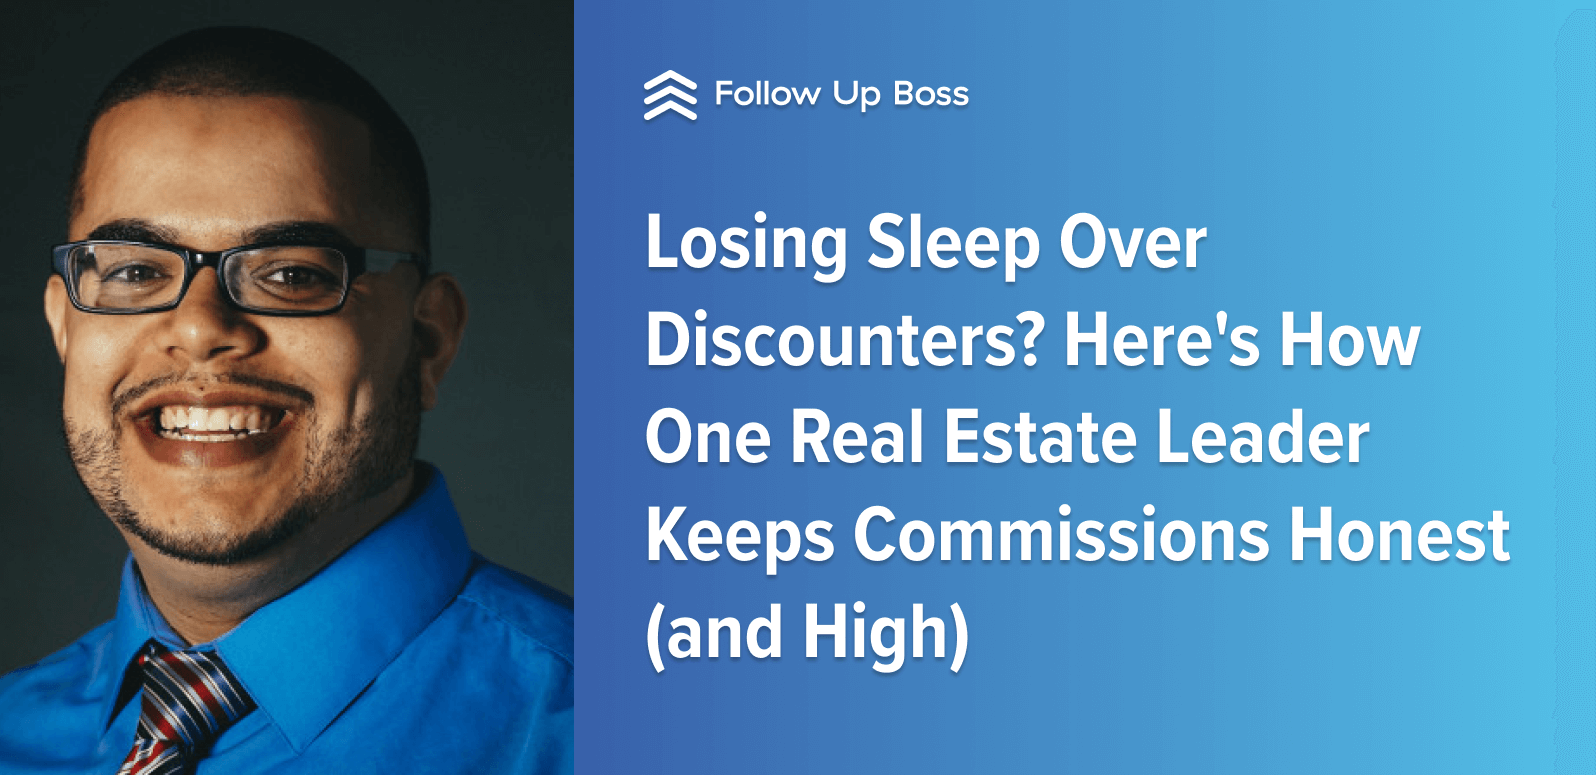 Losing Sleep Over Discounters? Here's How One Real Estate Leader Keeps Commissions Honest (and High)